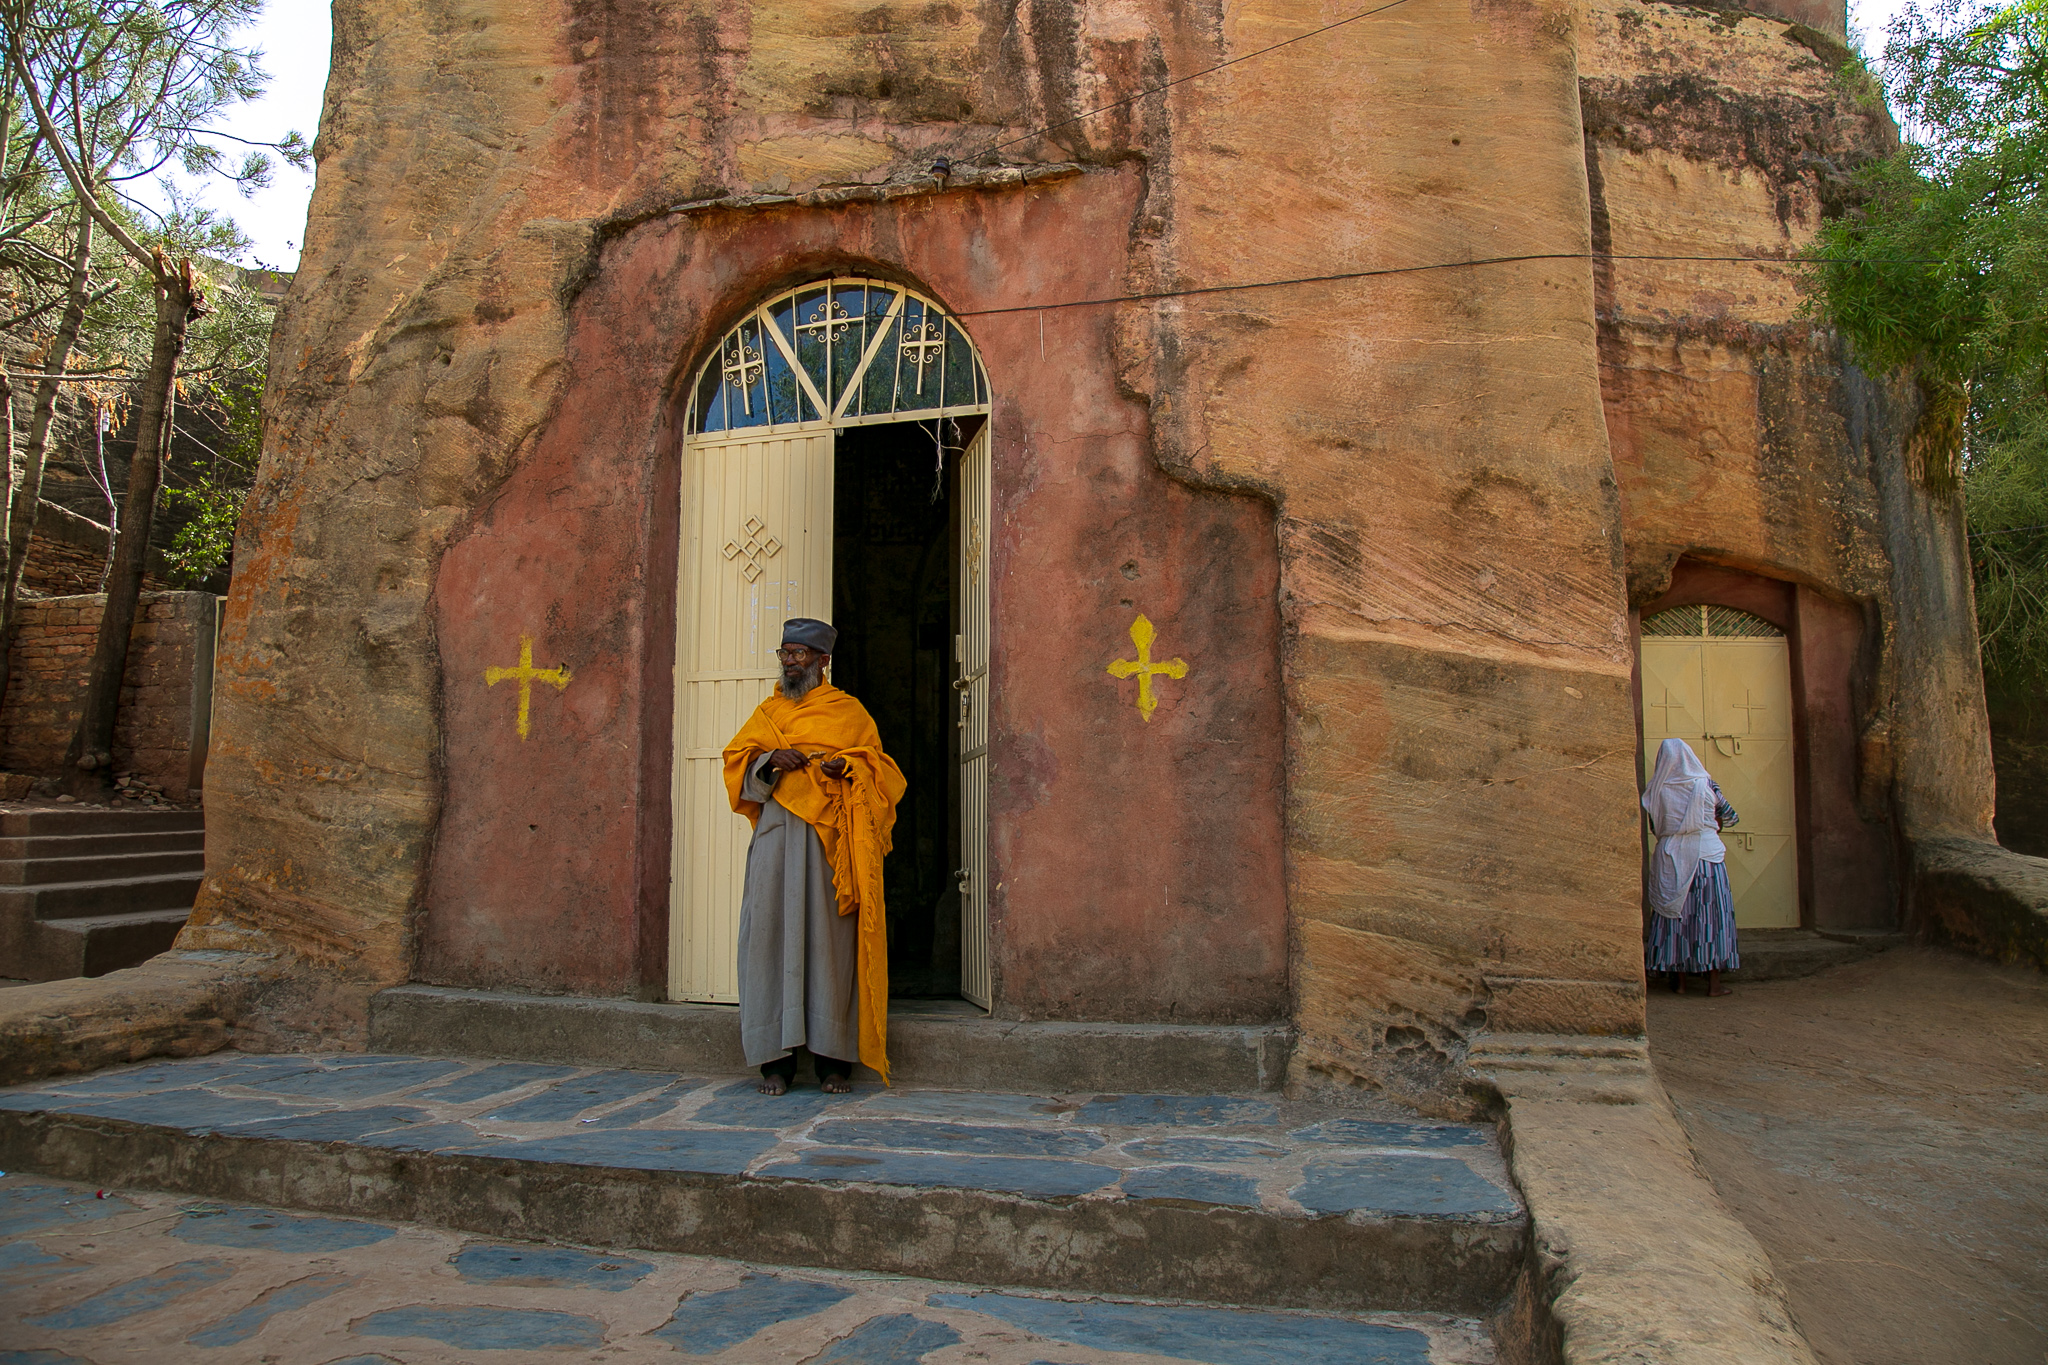 A priest stands ready for parishioners to enter a 4th century rock-hewn church in the Tigray region as a nun opens a side-entrance. // photo © Kim I. Mott